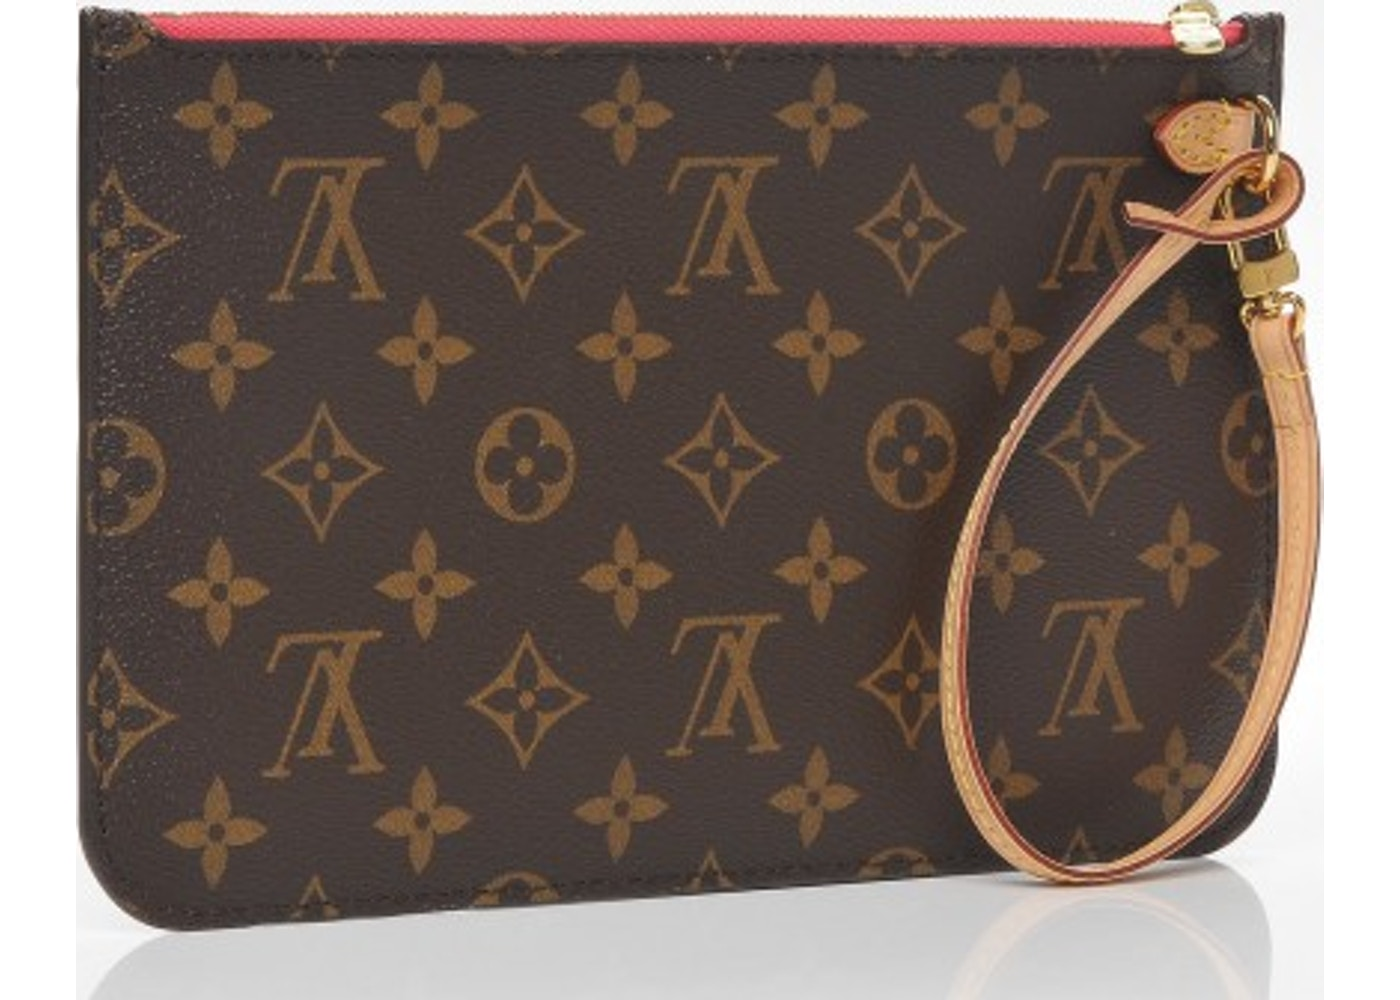 aee09de91c9a Louis Vuitton Pochette Neverfull MM Monogram GM Grenade Brown